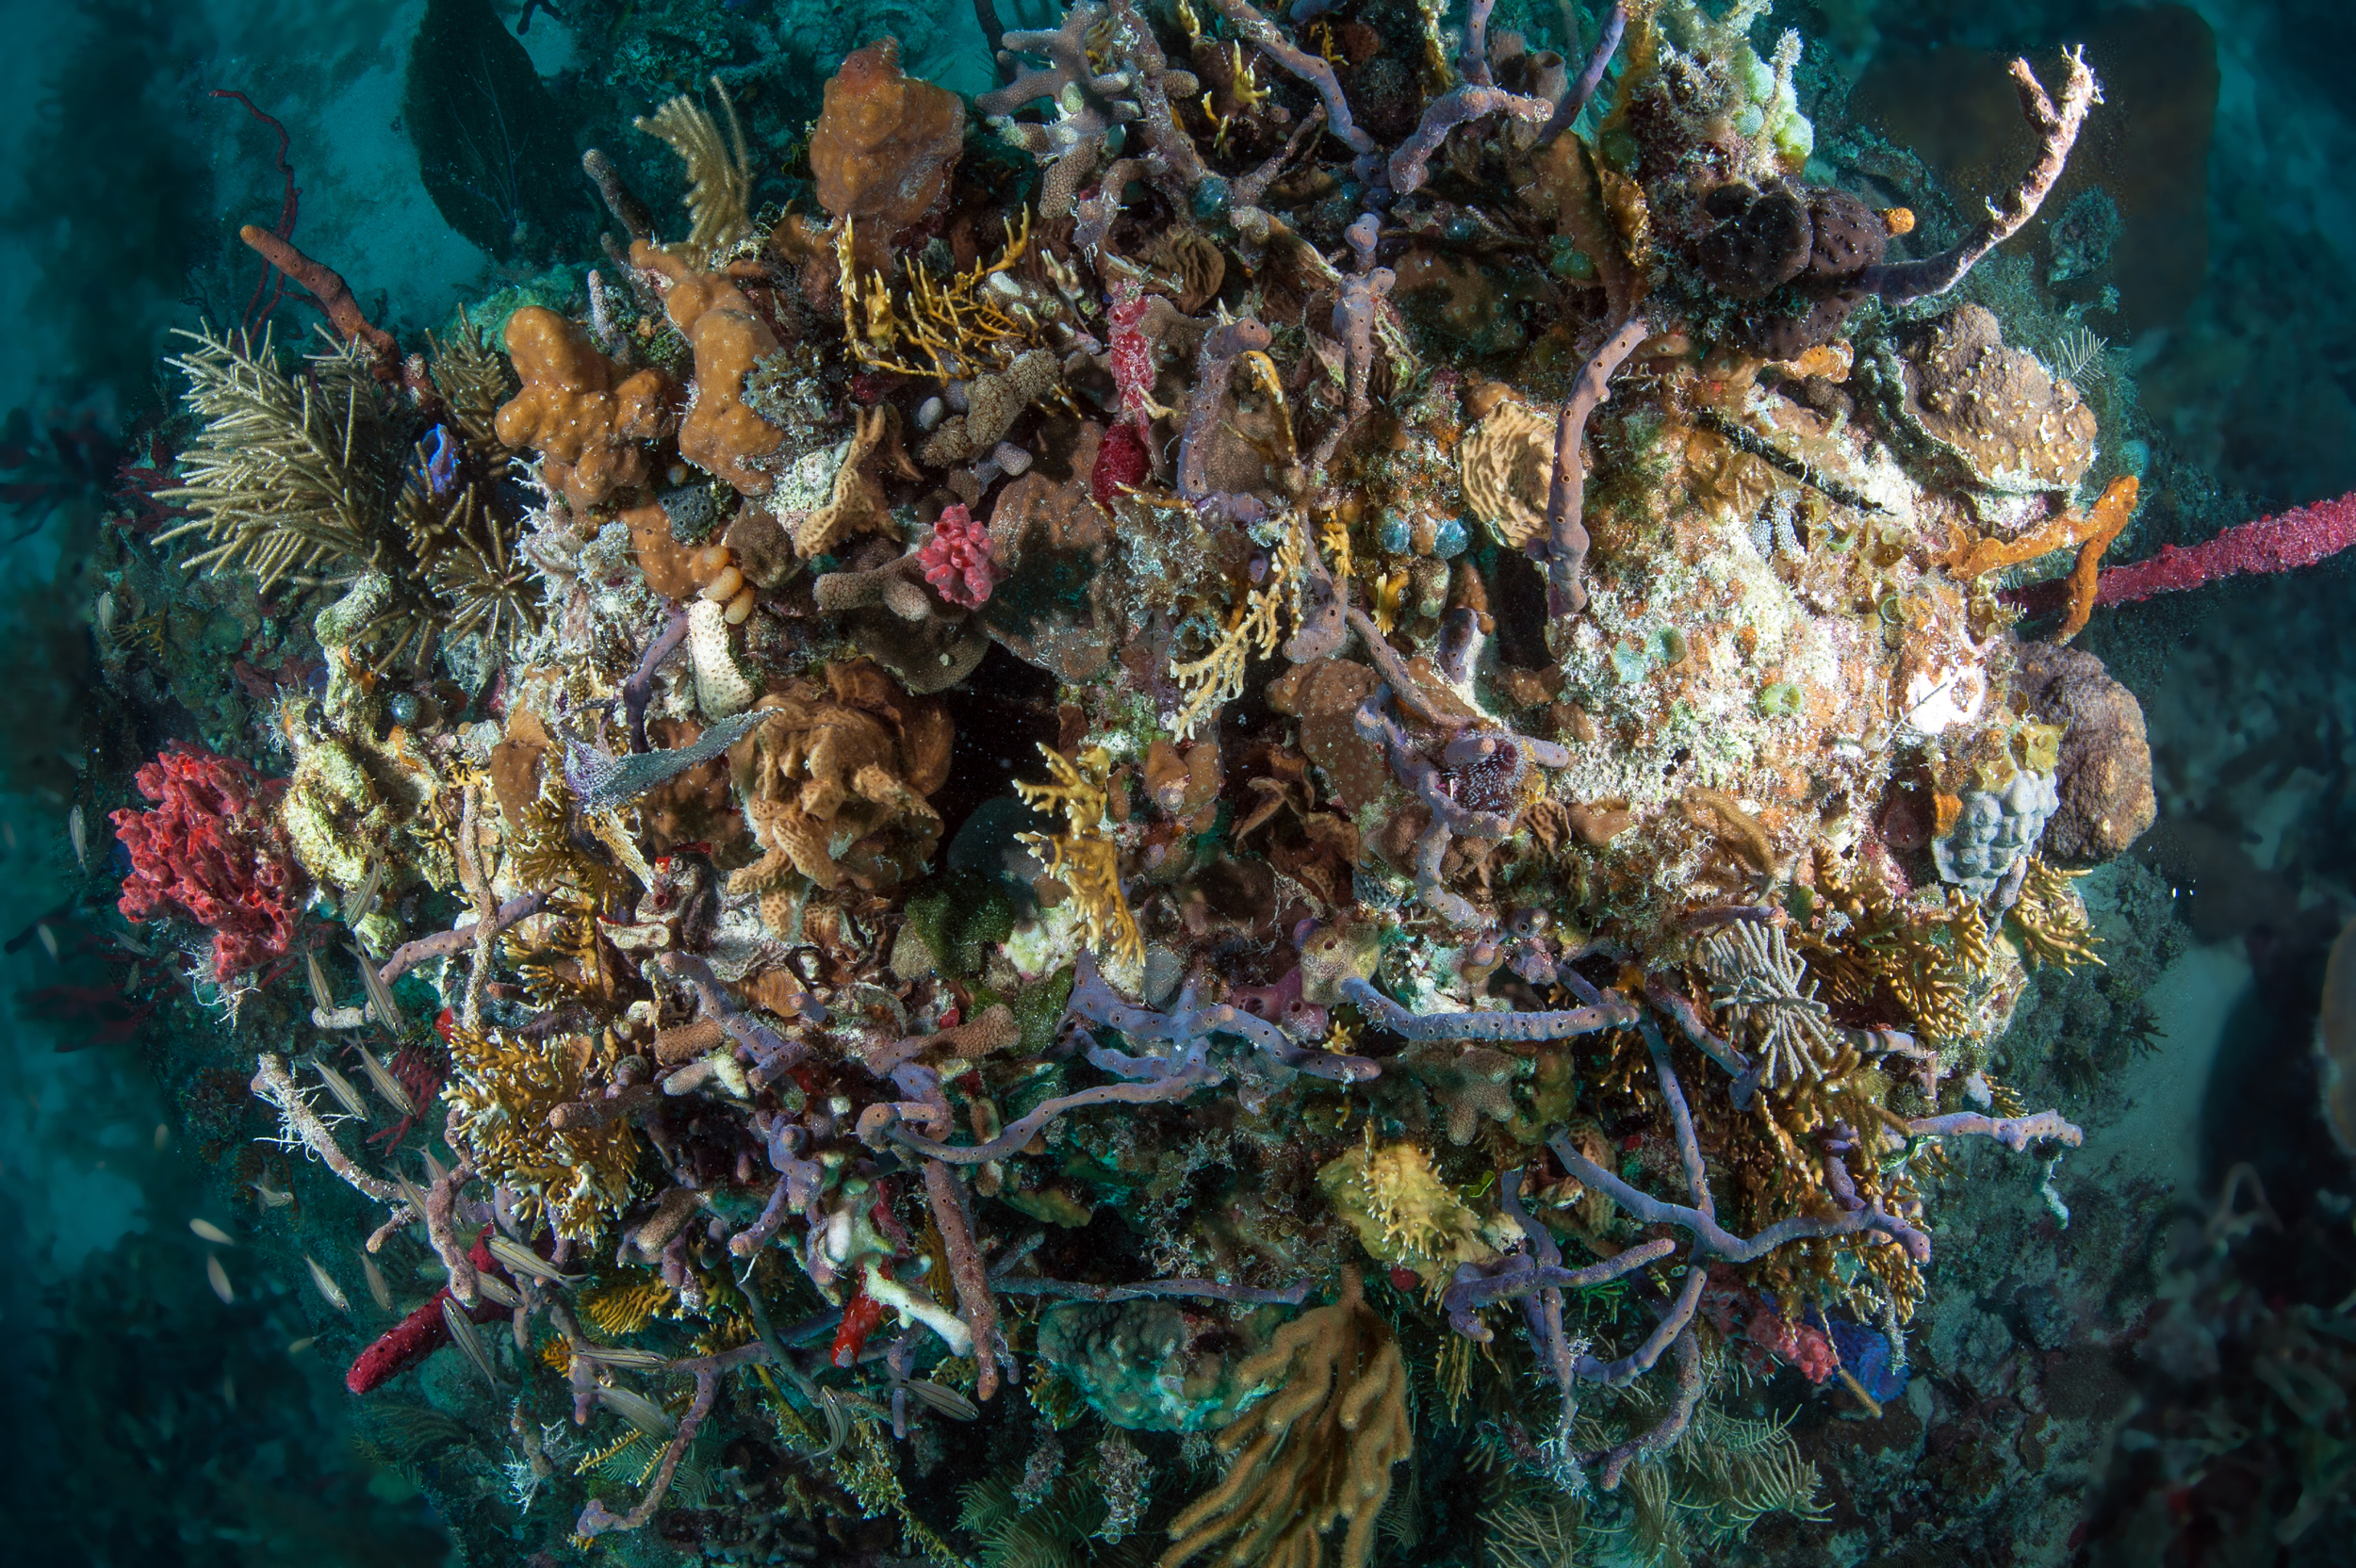 Metabolic diversityacross co-occurring sponge species may have an important rolein supporting diverse and complex reef communities like these in the Miskito Cays of Honduras .